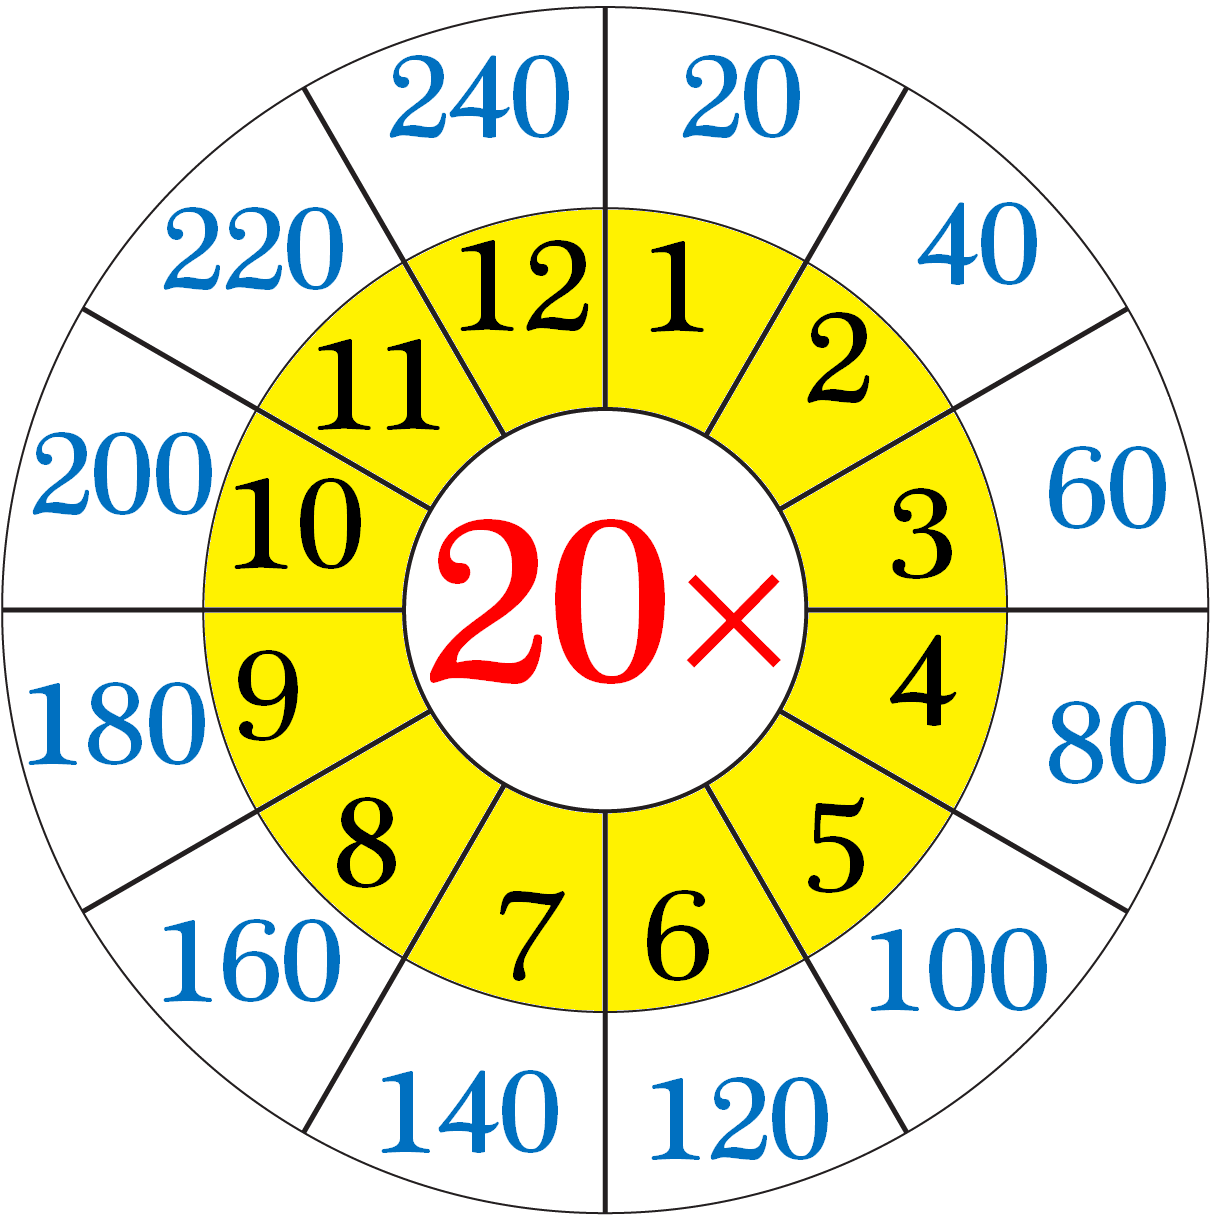 Multiplication Table of 20